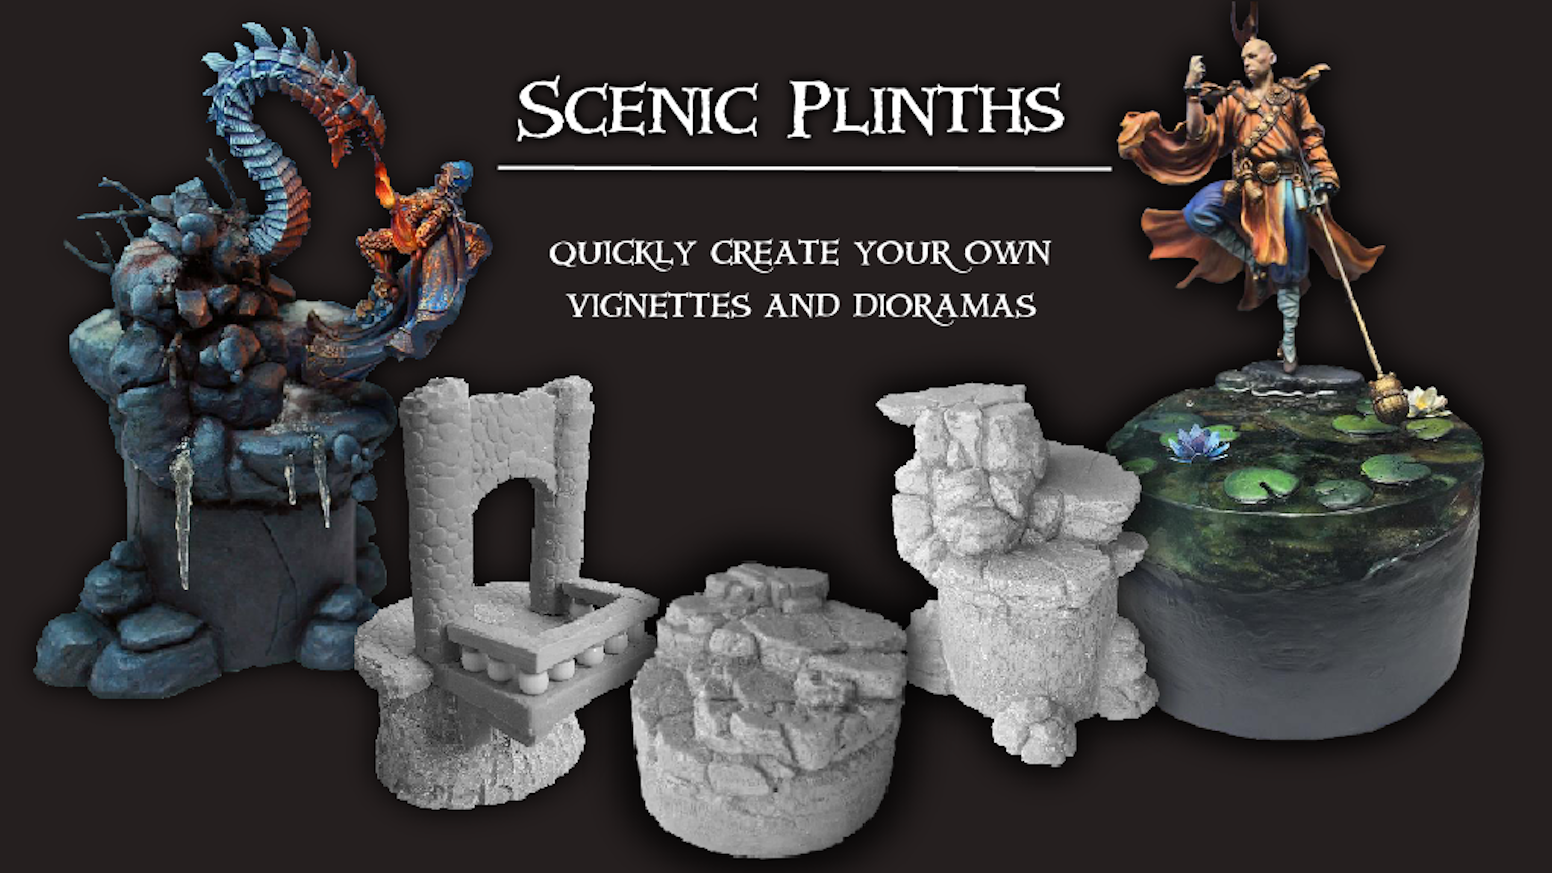 Scenic resin plinths help turn your finely painted miniatures into near instant vignettes, dioramas and displays.